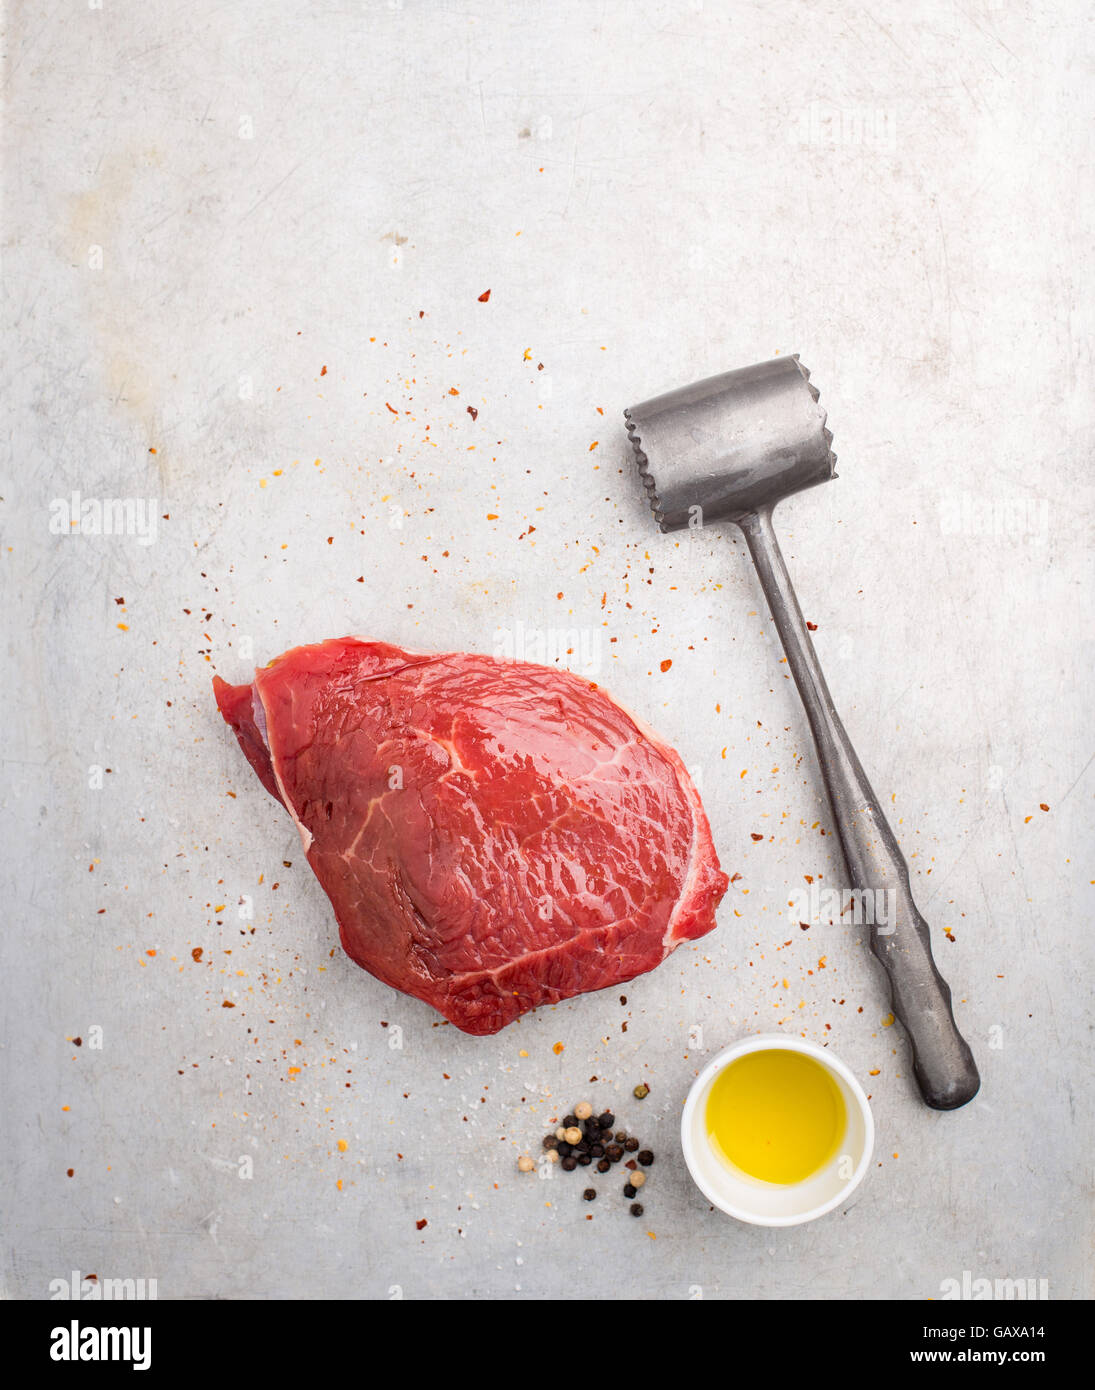 Piece of raw beef ready for cooking - Stock Image